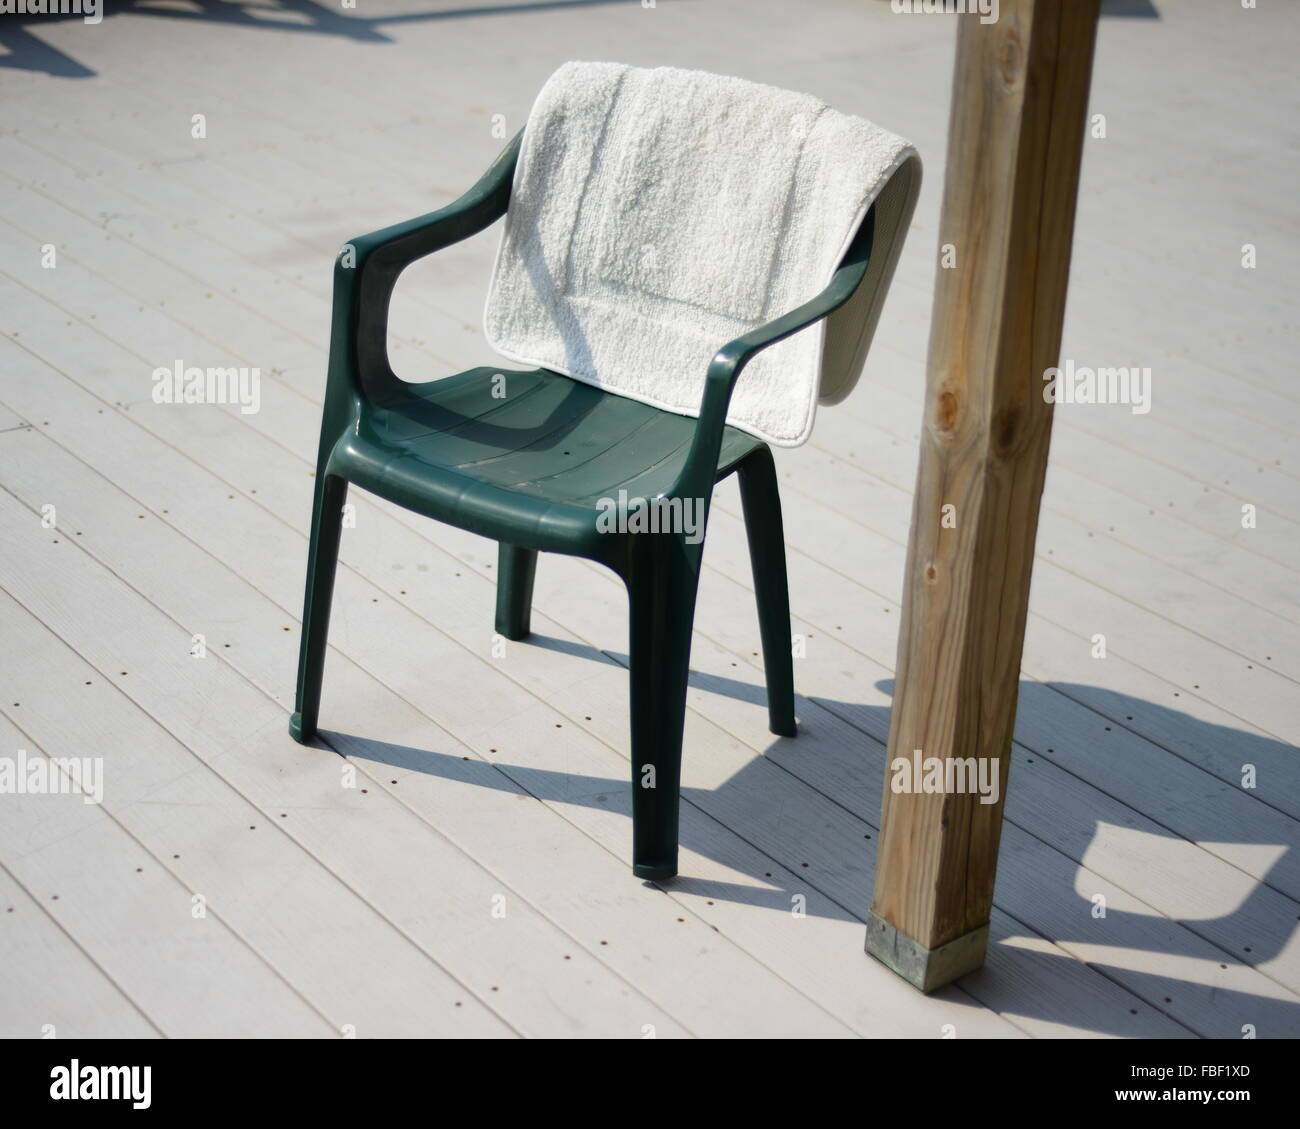 High Angle View Of Towel On Plastic Chair By Wooden Post - Stock Image